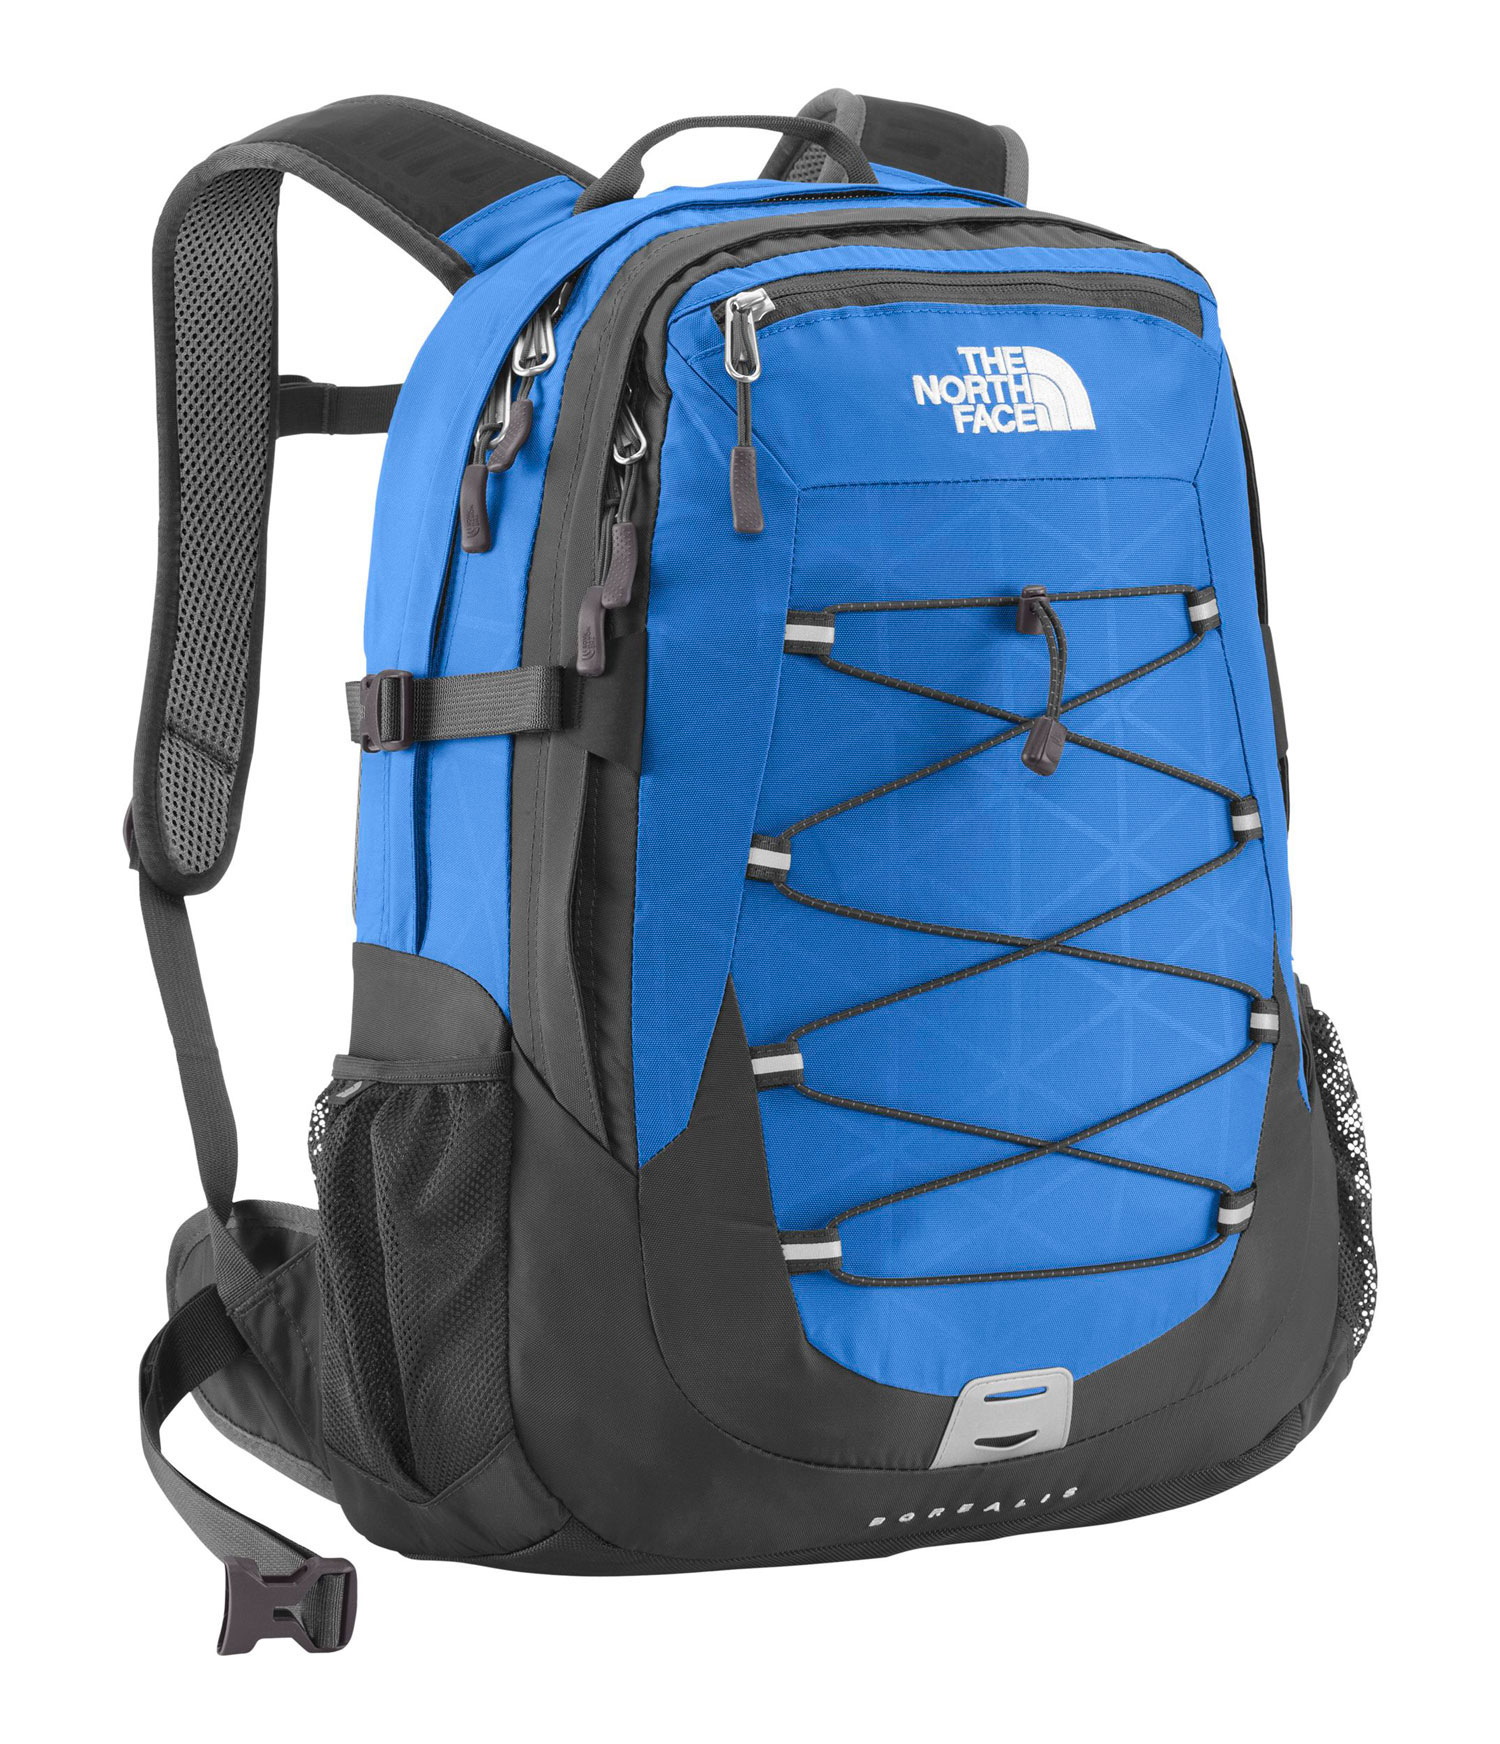 Key Features of The North Face Borealis Backpack: Avg Weight: 2 lbs 9 oz (1166 g) 6/25/12-7/15/12 Volume: 1770 in3 (29 liters) Fabric: 420D nylon, 600D polyester print, 1680D ballistics nylon FlexVent injection-molded shoulder straps with additional PE foam for added comfort Comfortable, padded Airmesh back panel with Spine Channel and PE sheet for extra back support Integrated reflective light loop Winged, stowable hipbelt Large main compartment with variable-sized laptop sleeve, organization and hydration port Secondary compartment with organization Front stash pocket Mesh side water bottle pockets - $89.00